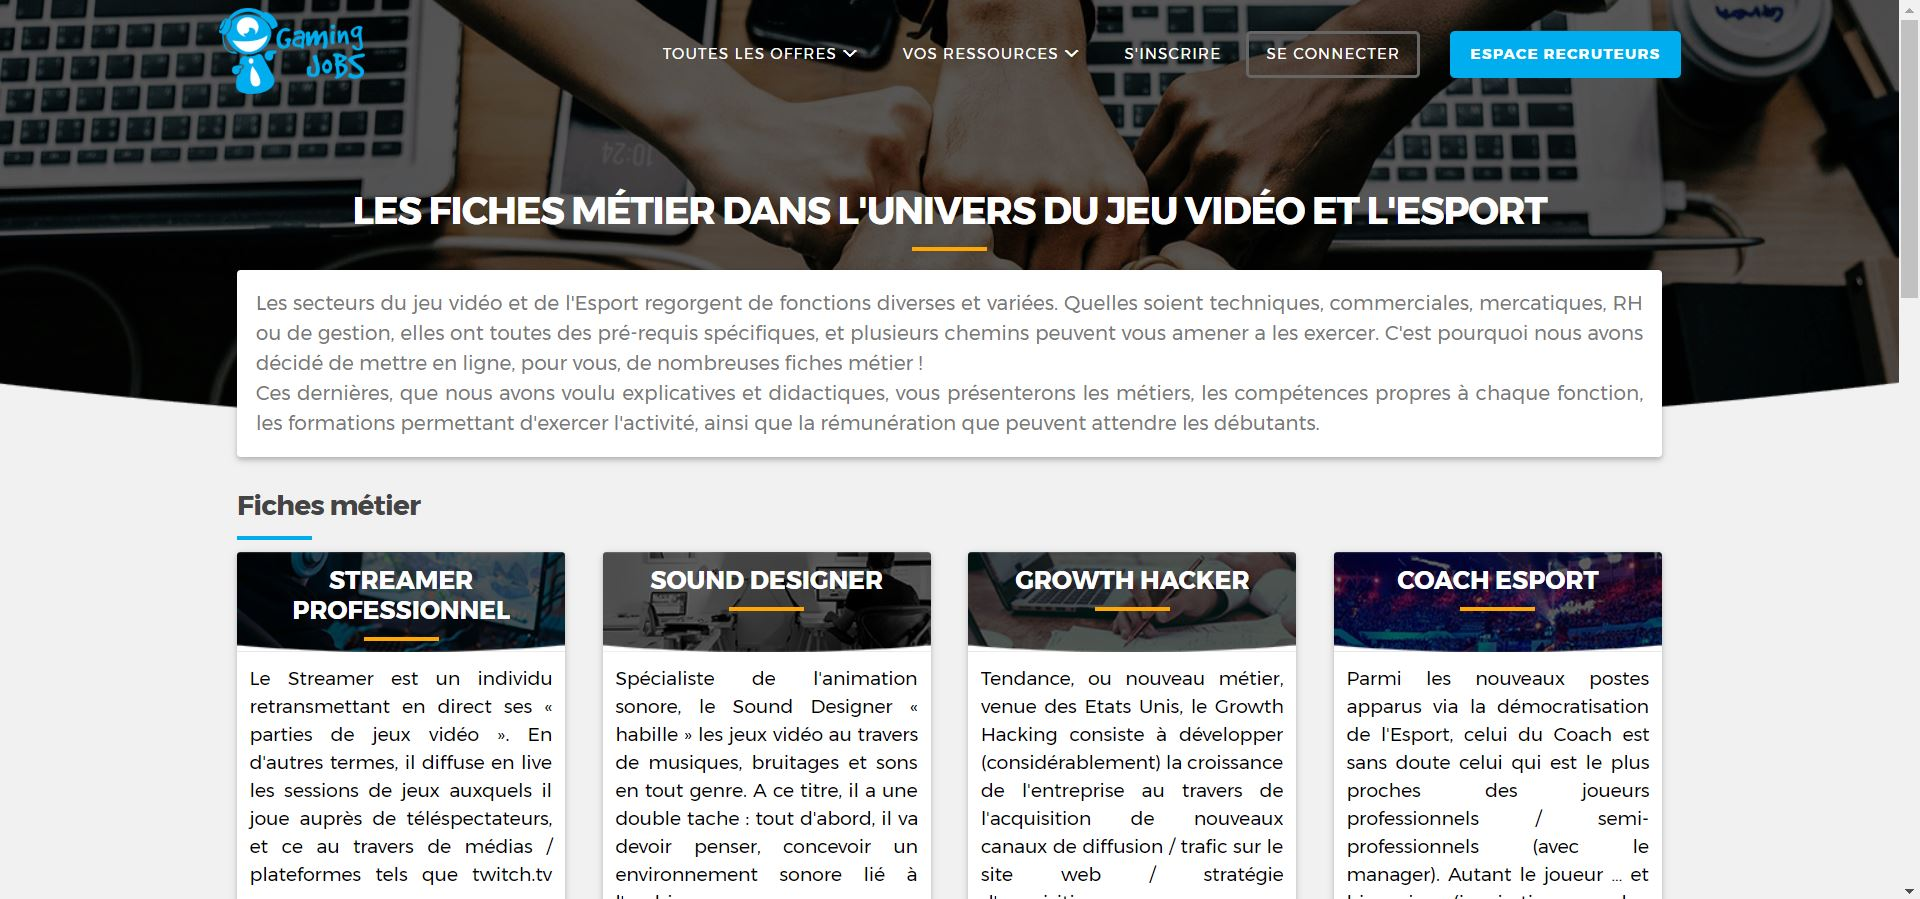 gaming jobs fiches métiers